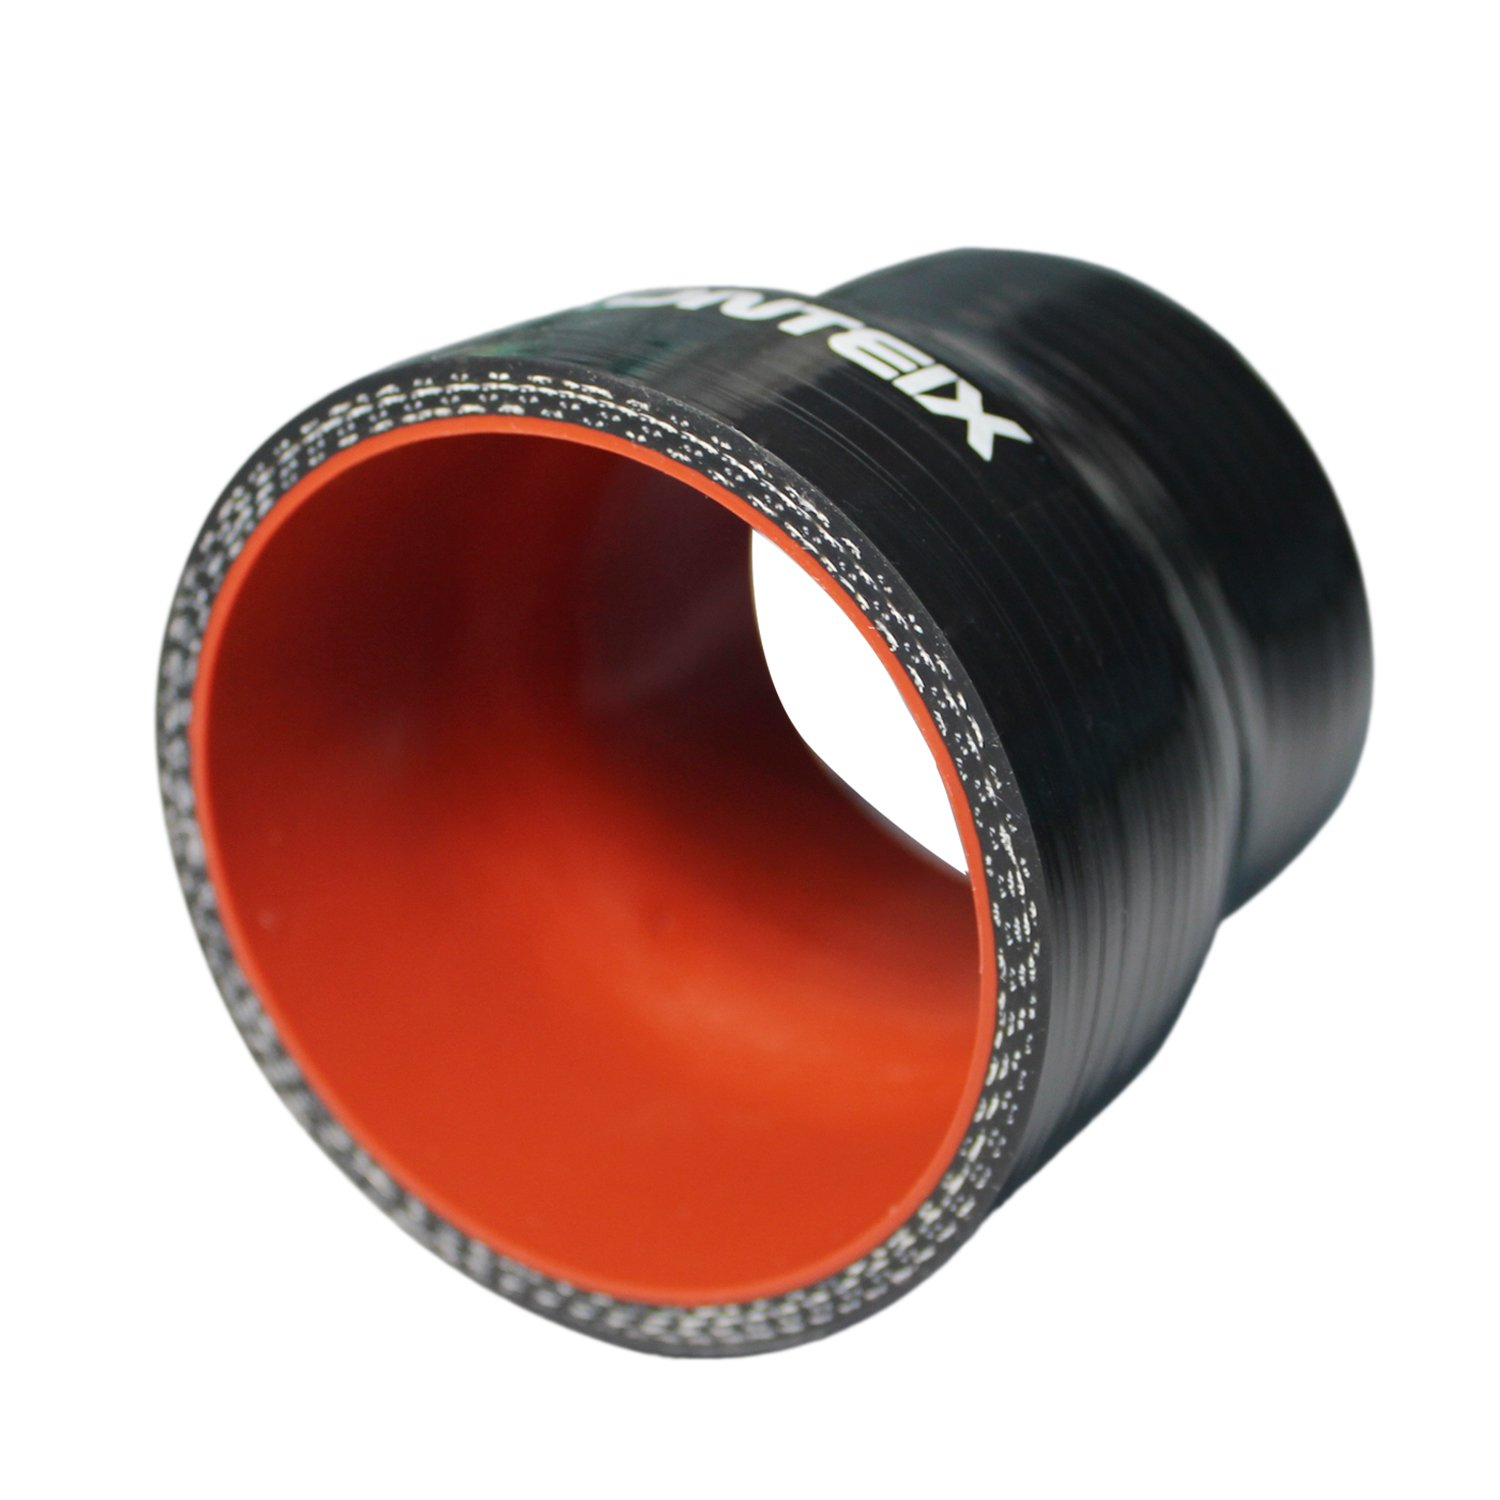 Ronteix Universal ID 2.5 to 2 Silicone Reducer Coupler Radiator Hose 63MM to 51MM, BLACK